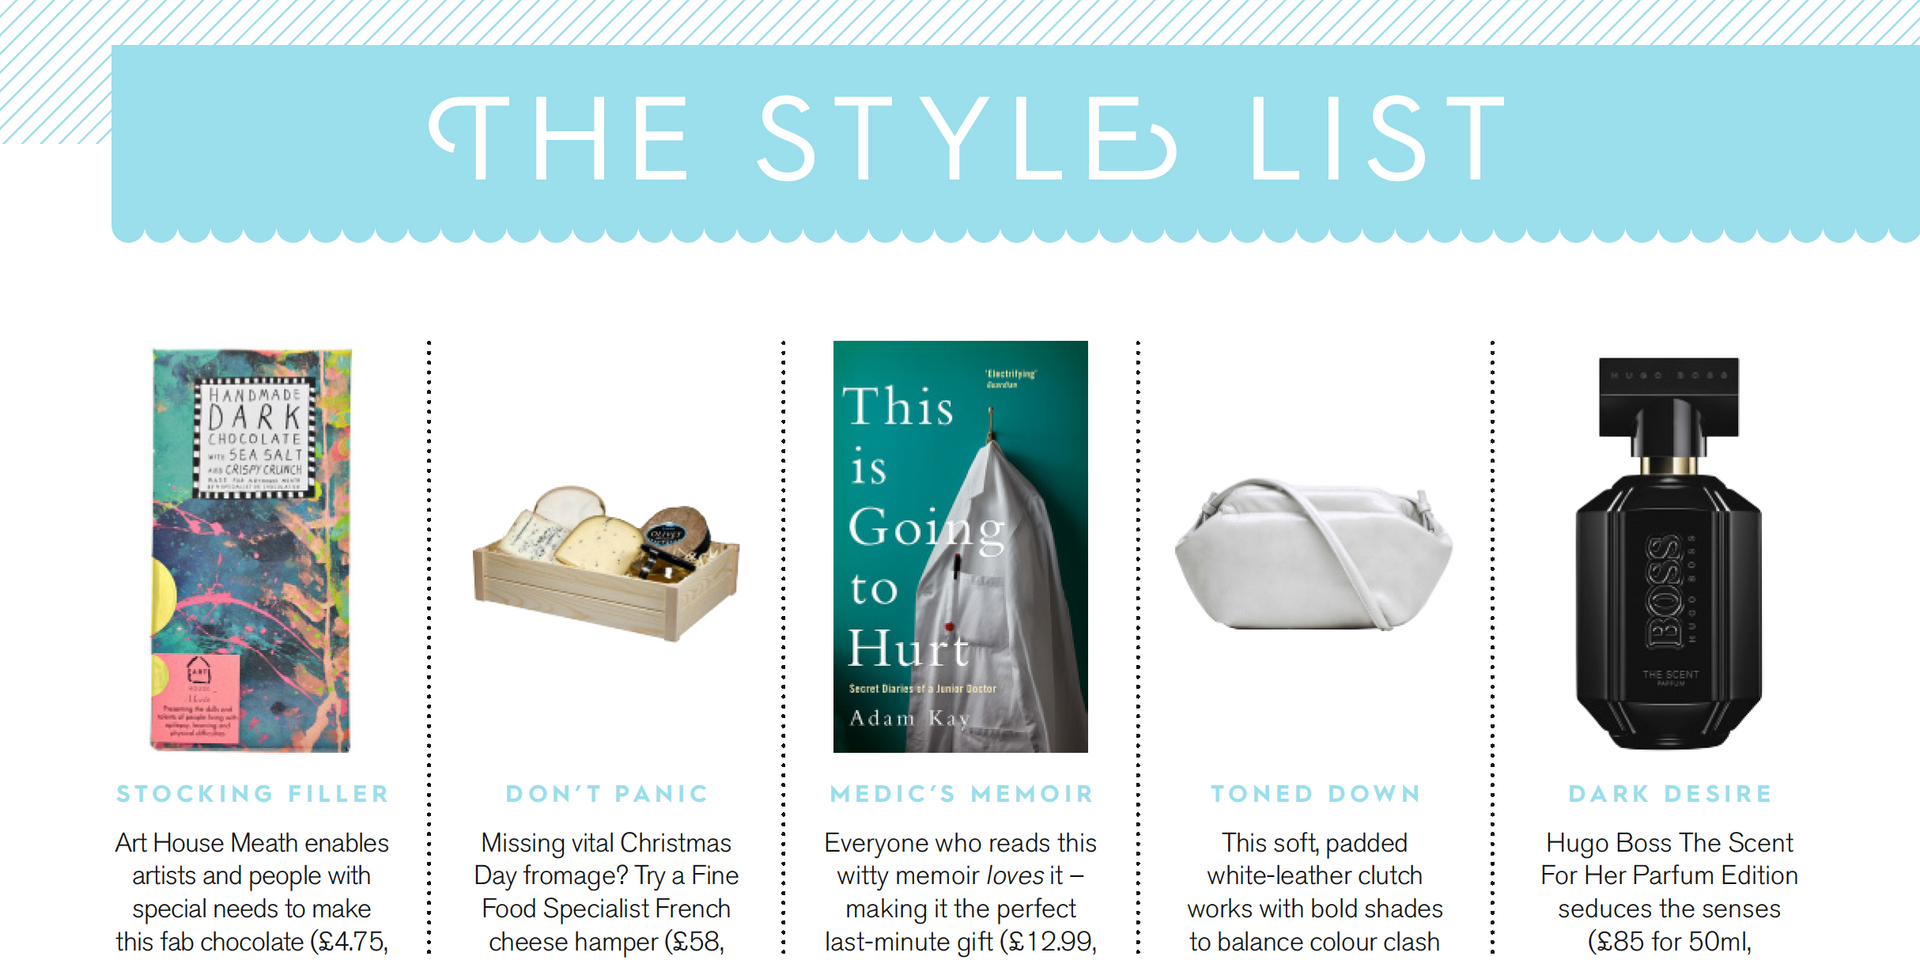 THE STYLE LIST, Stylist issue 397